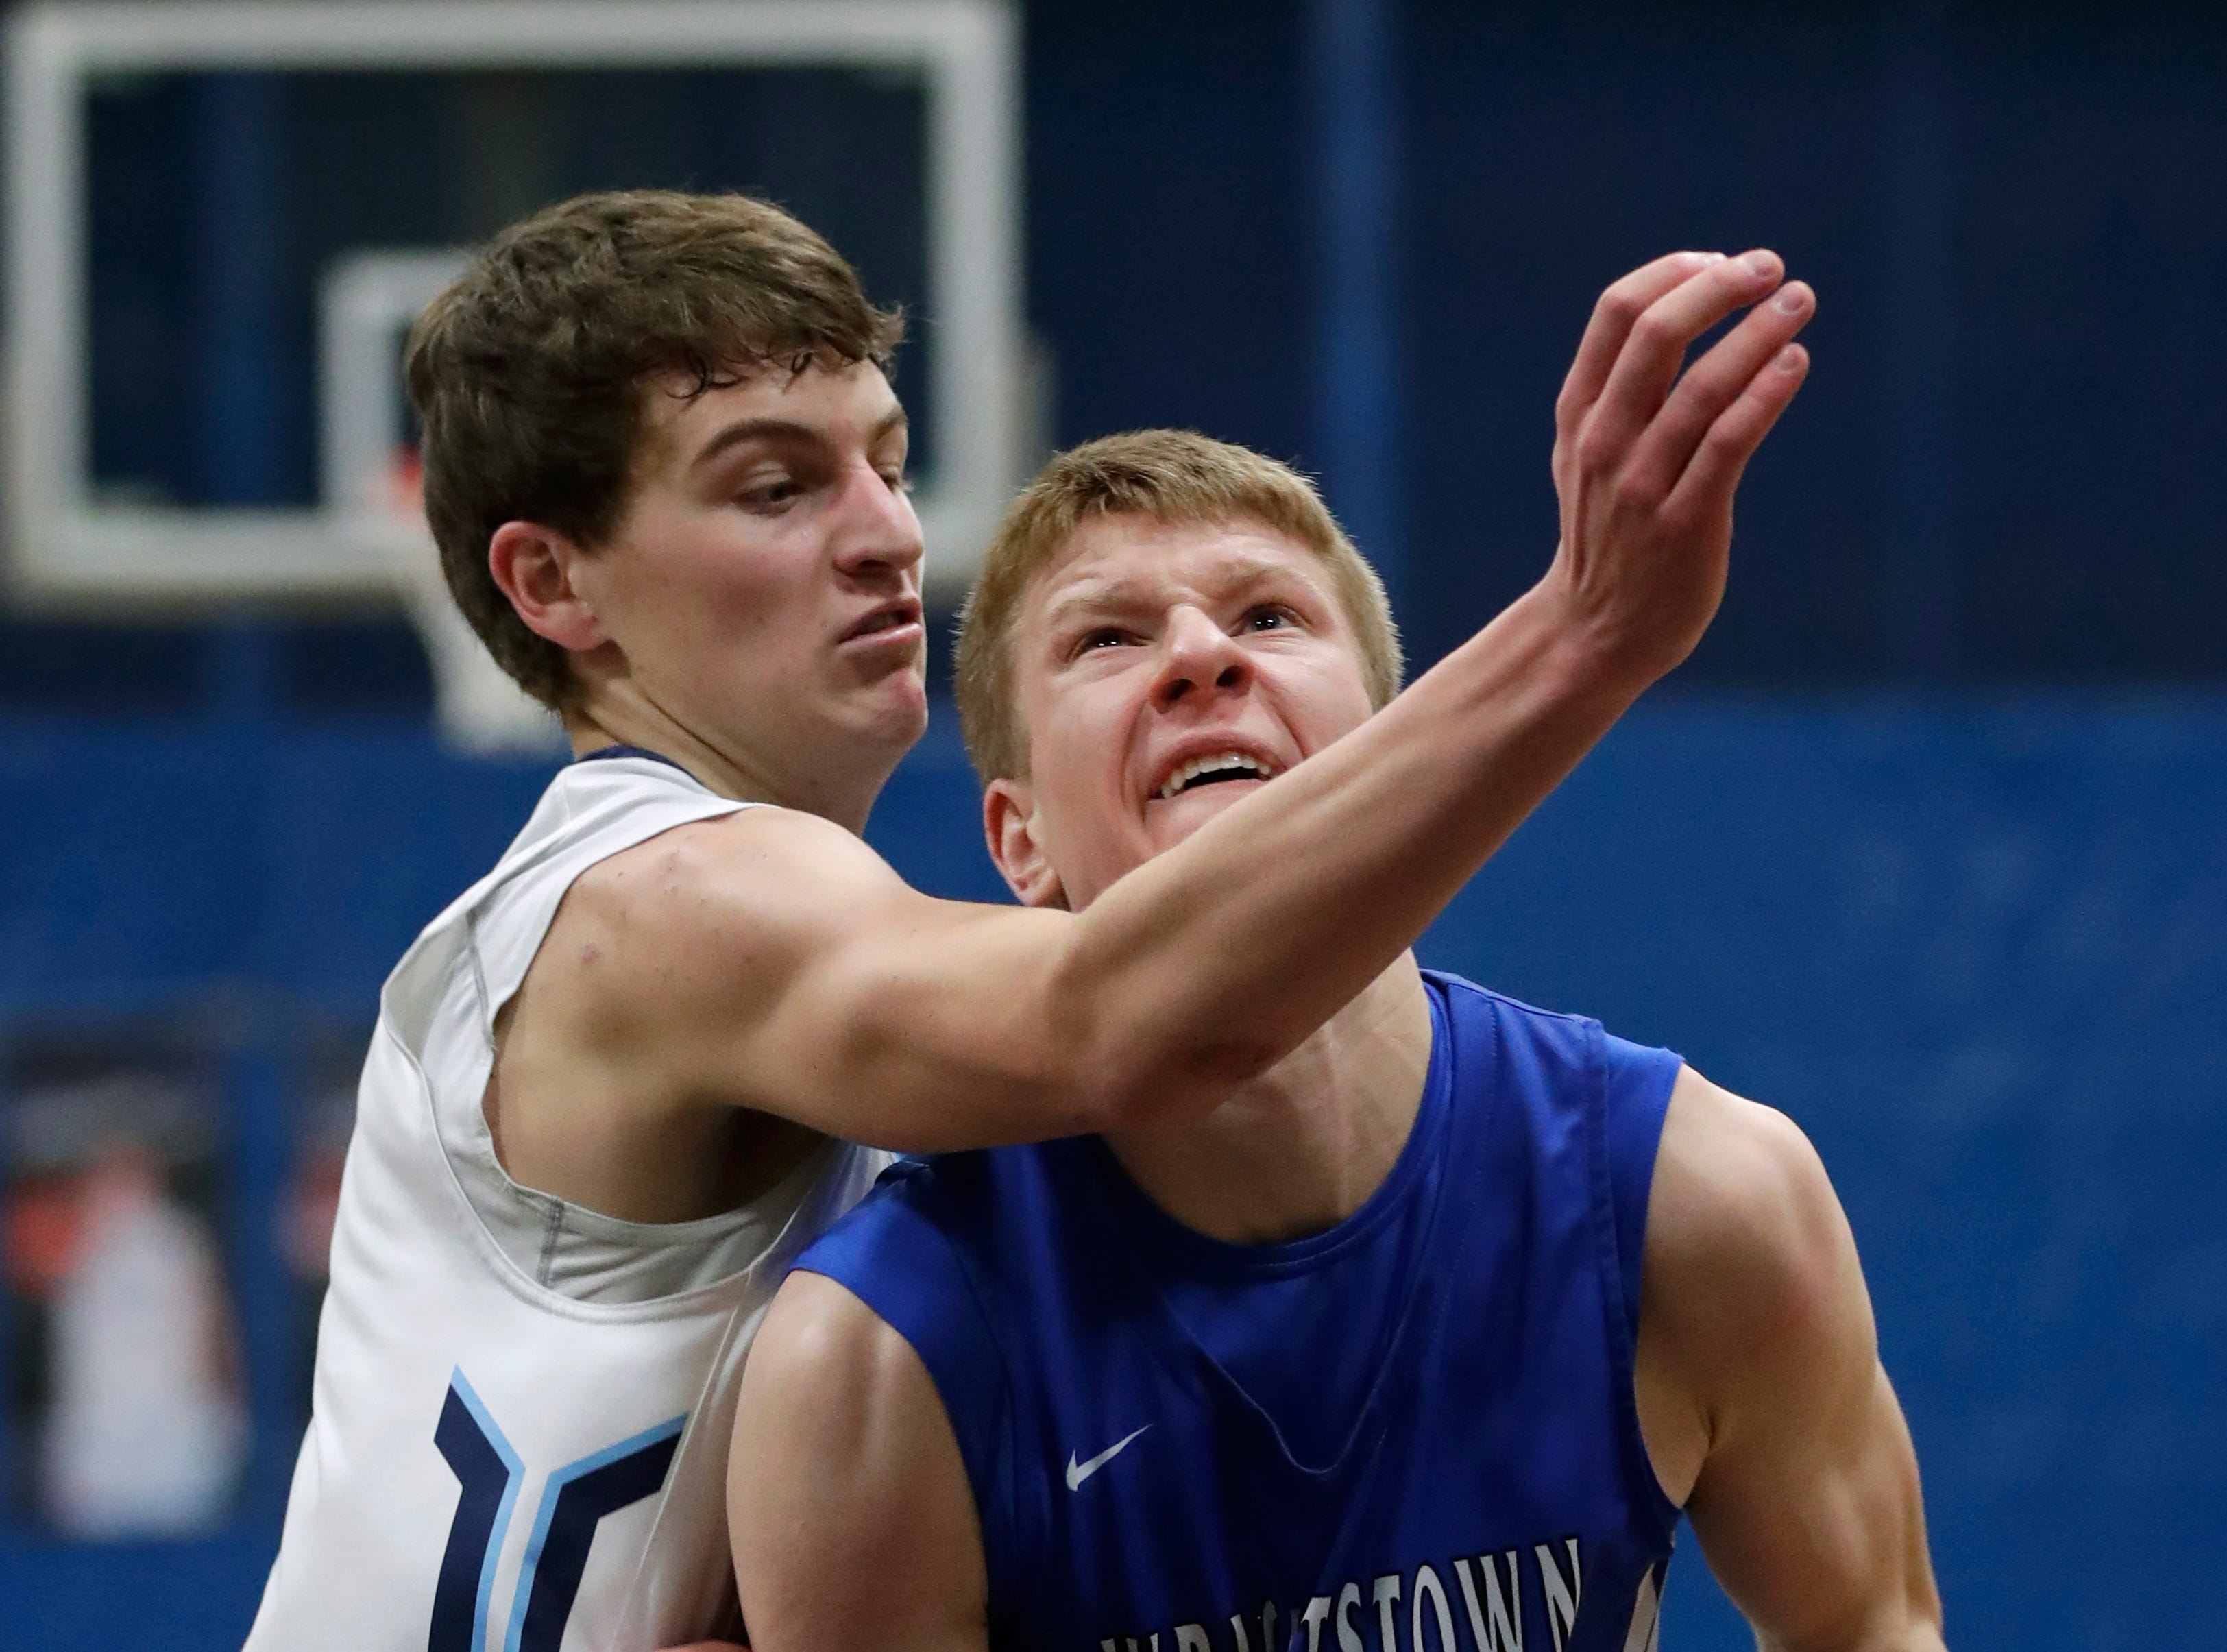 Little Chute High School's Logan Plate, left, commits a foul against Wrightstown High School's Mayson Hazaert as he puts up a shot during their boys basketball game Friday, February 1, 2019, in Little Chute, Wis. 